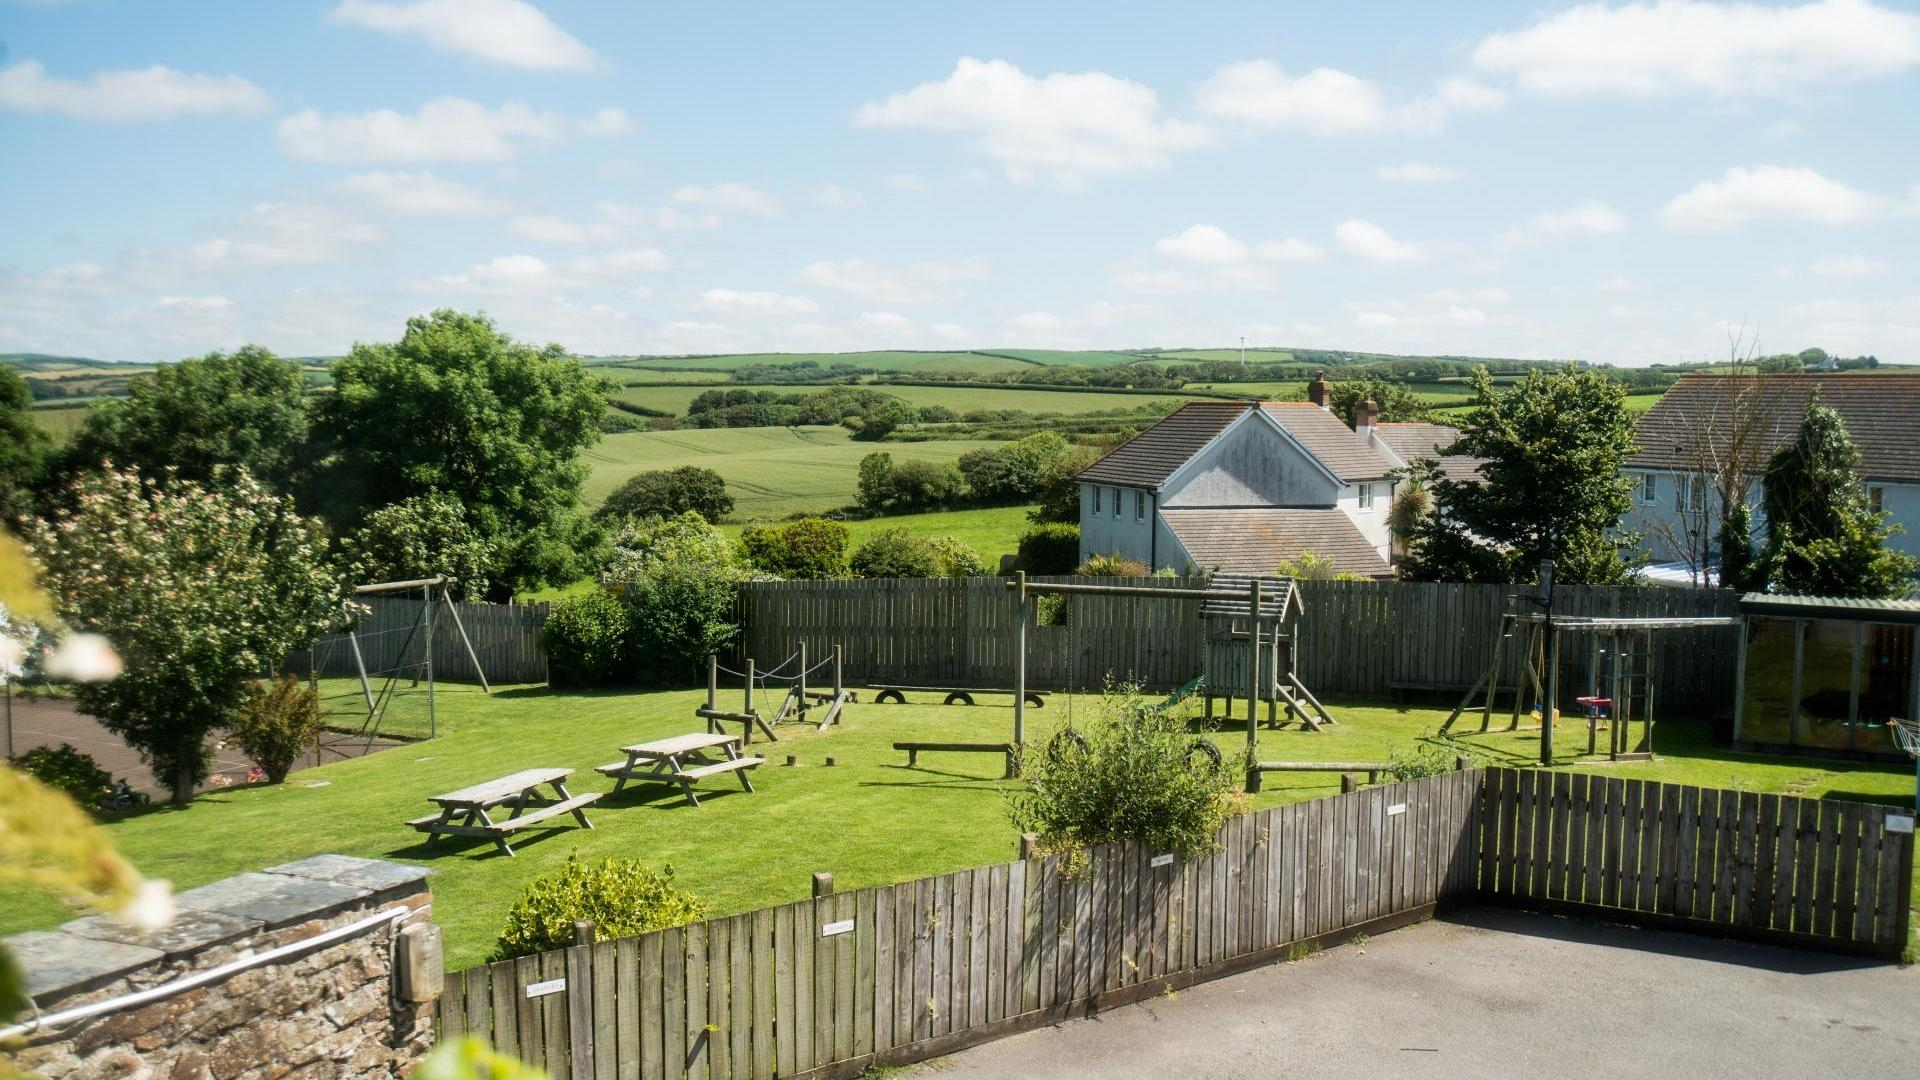 3 Bedroom Private cottage/shared facilities in Cornwall, United Kingdom